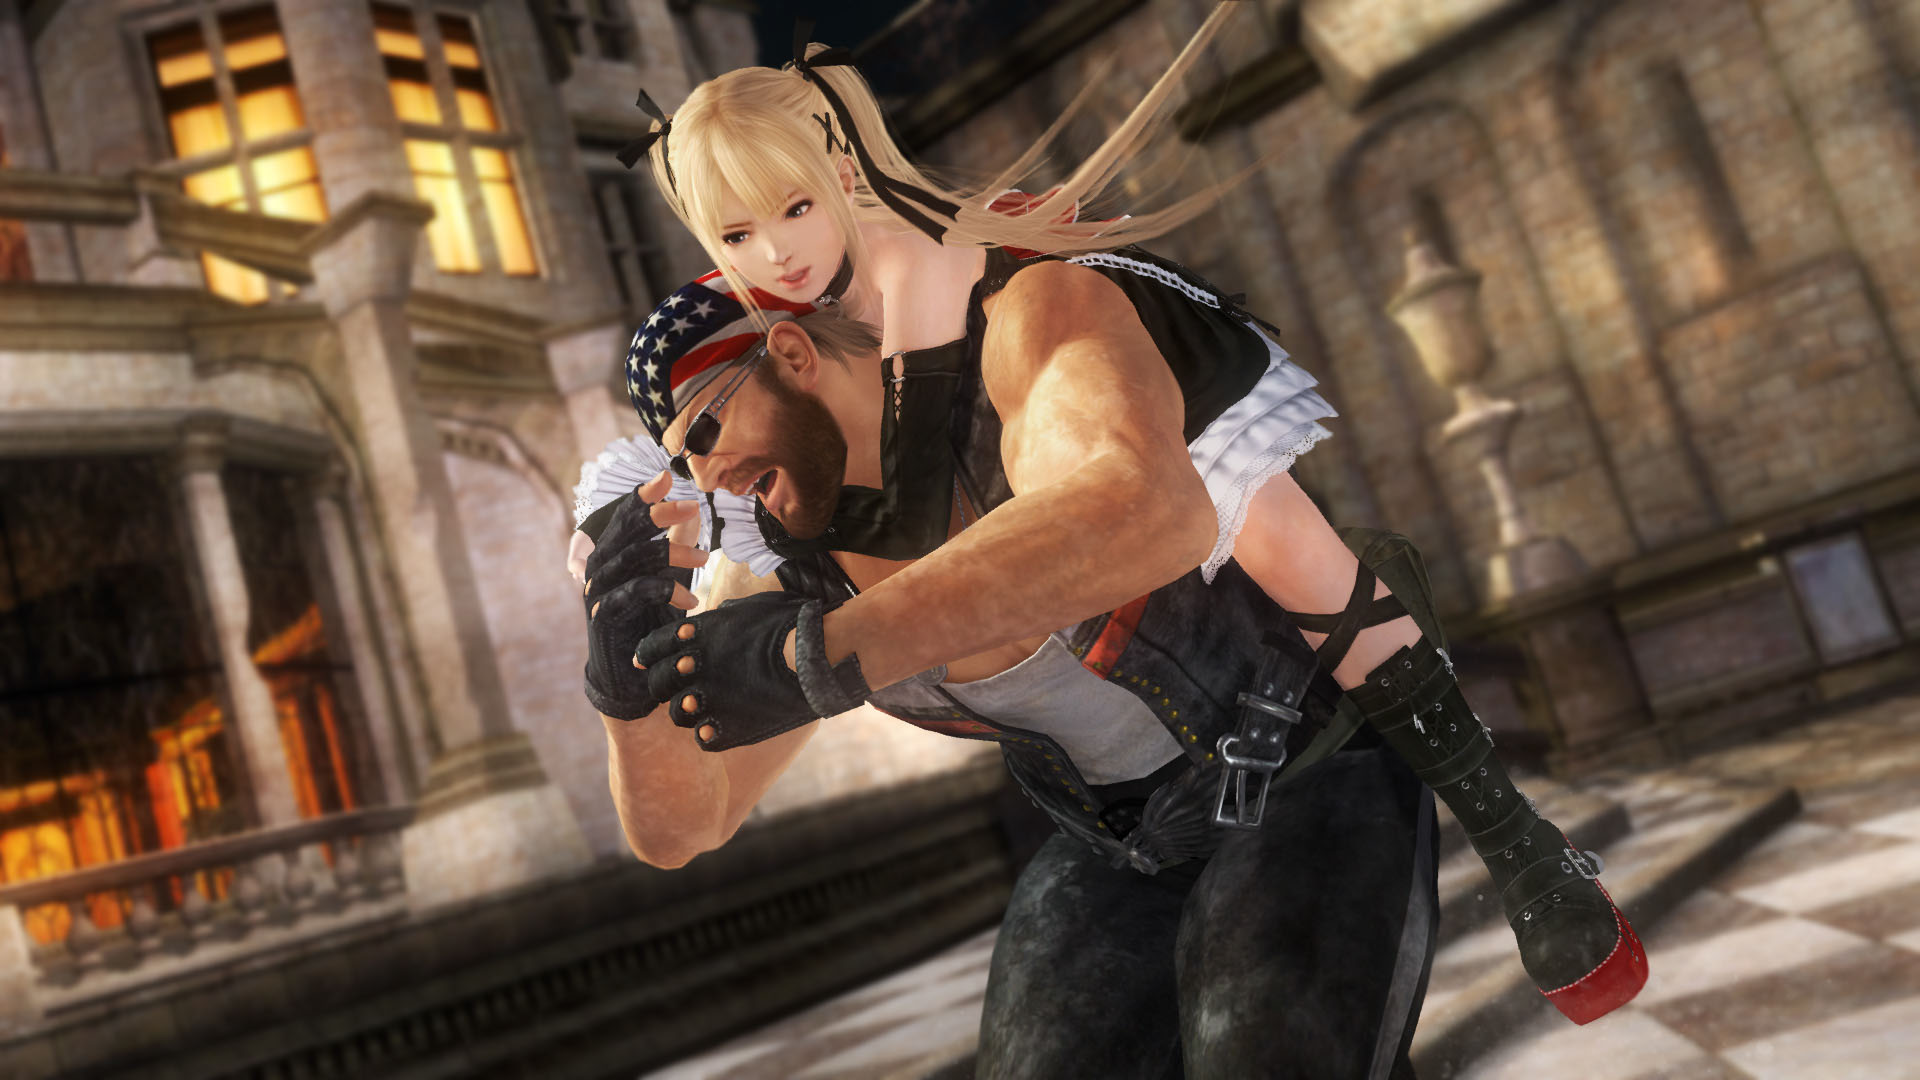 Marie Rose/Dead or Alive 5 Ultimate command list